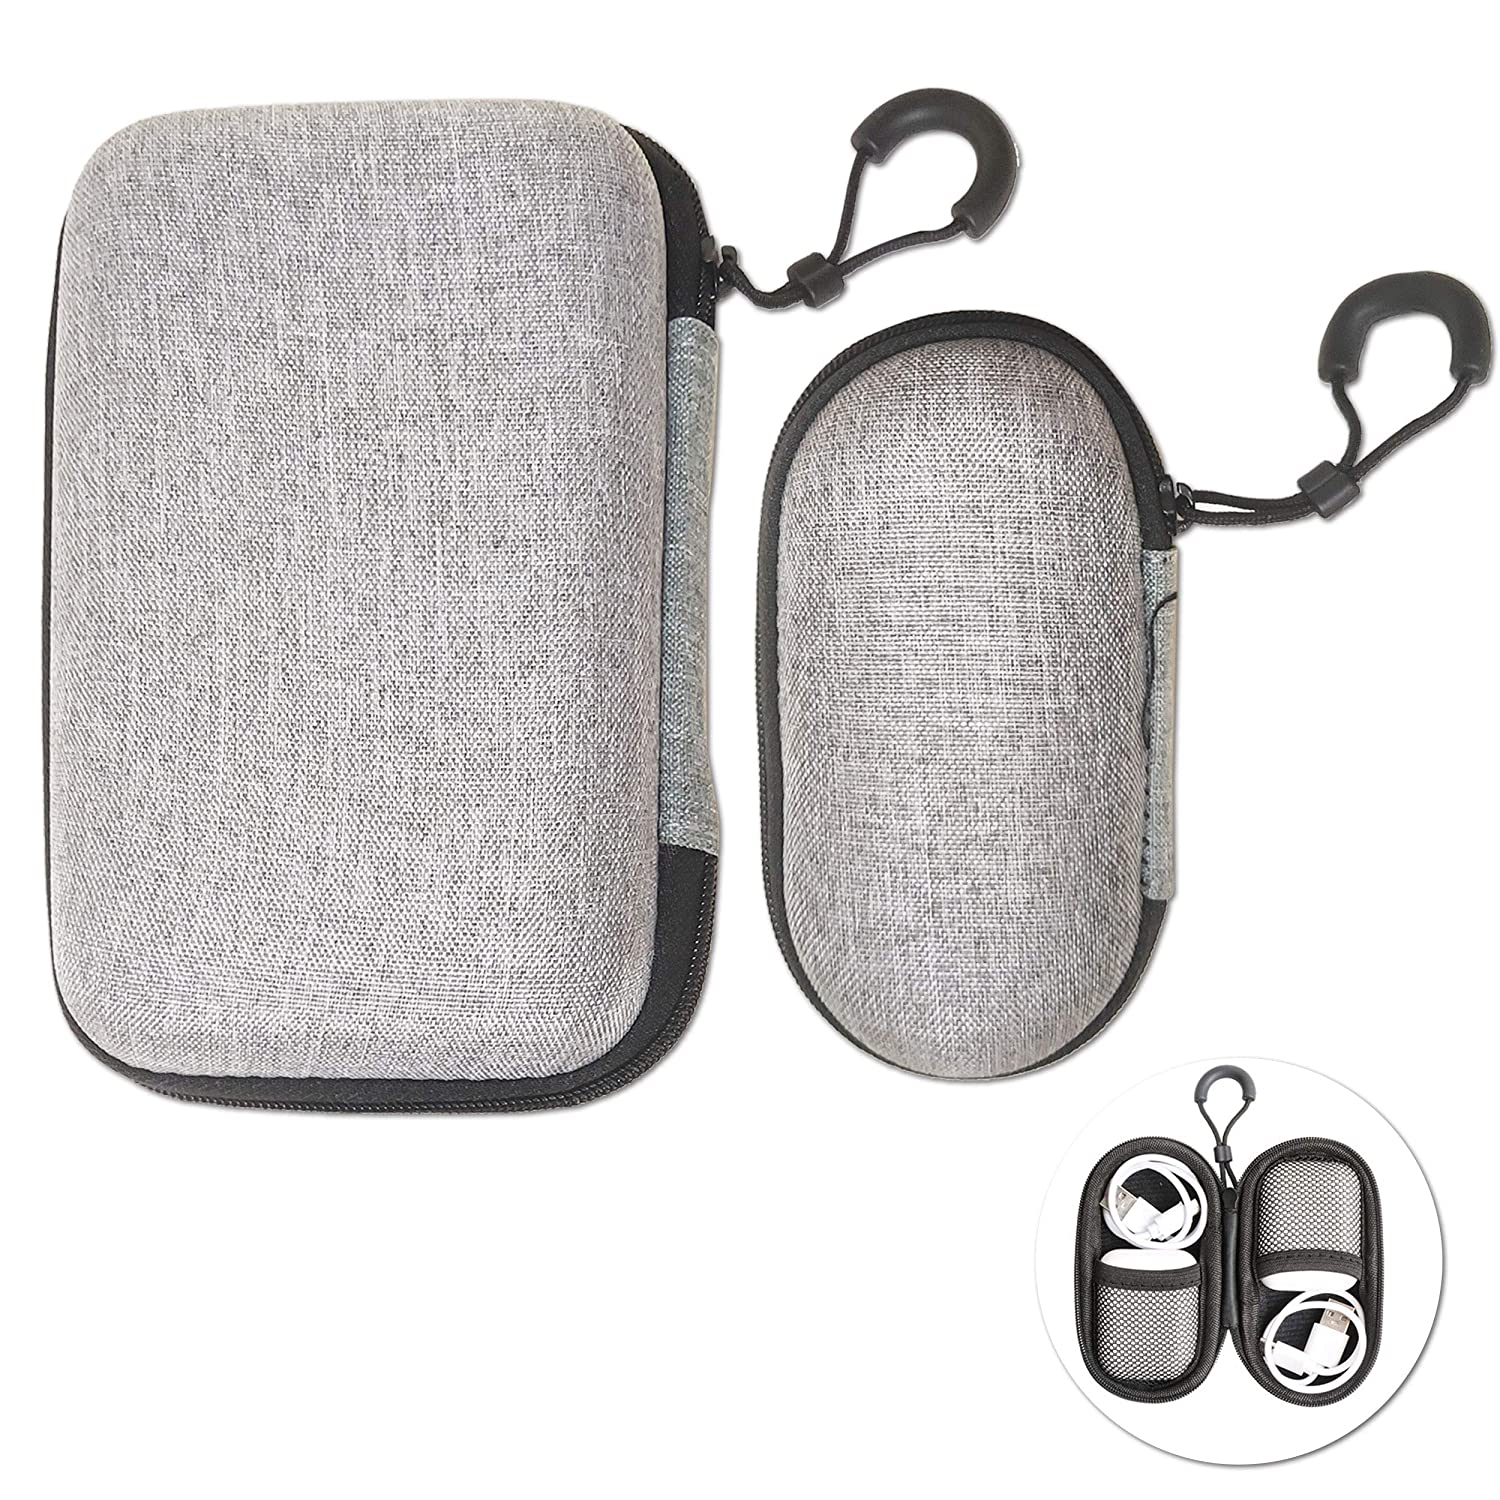 2 Pcs Universal Mini Headphone Case with Lanyard Easy to Carry Earphone Bag for Cable USB Driver